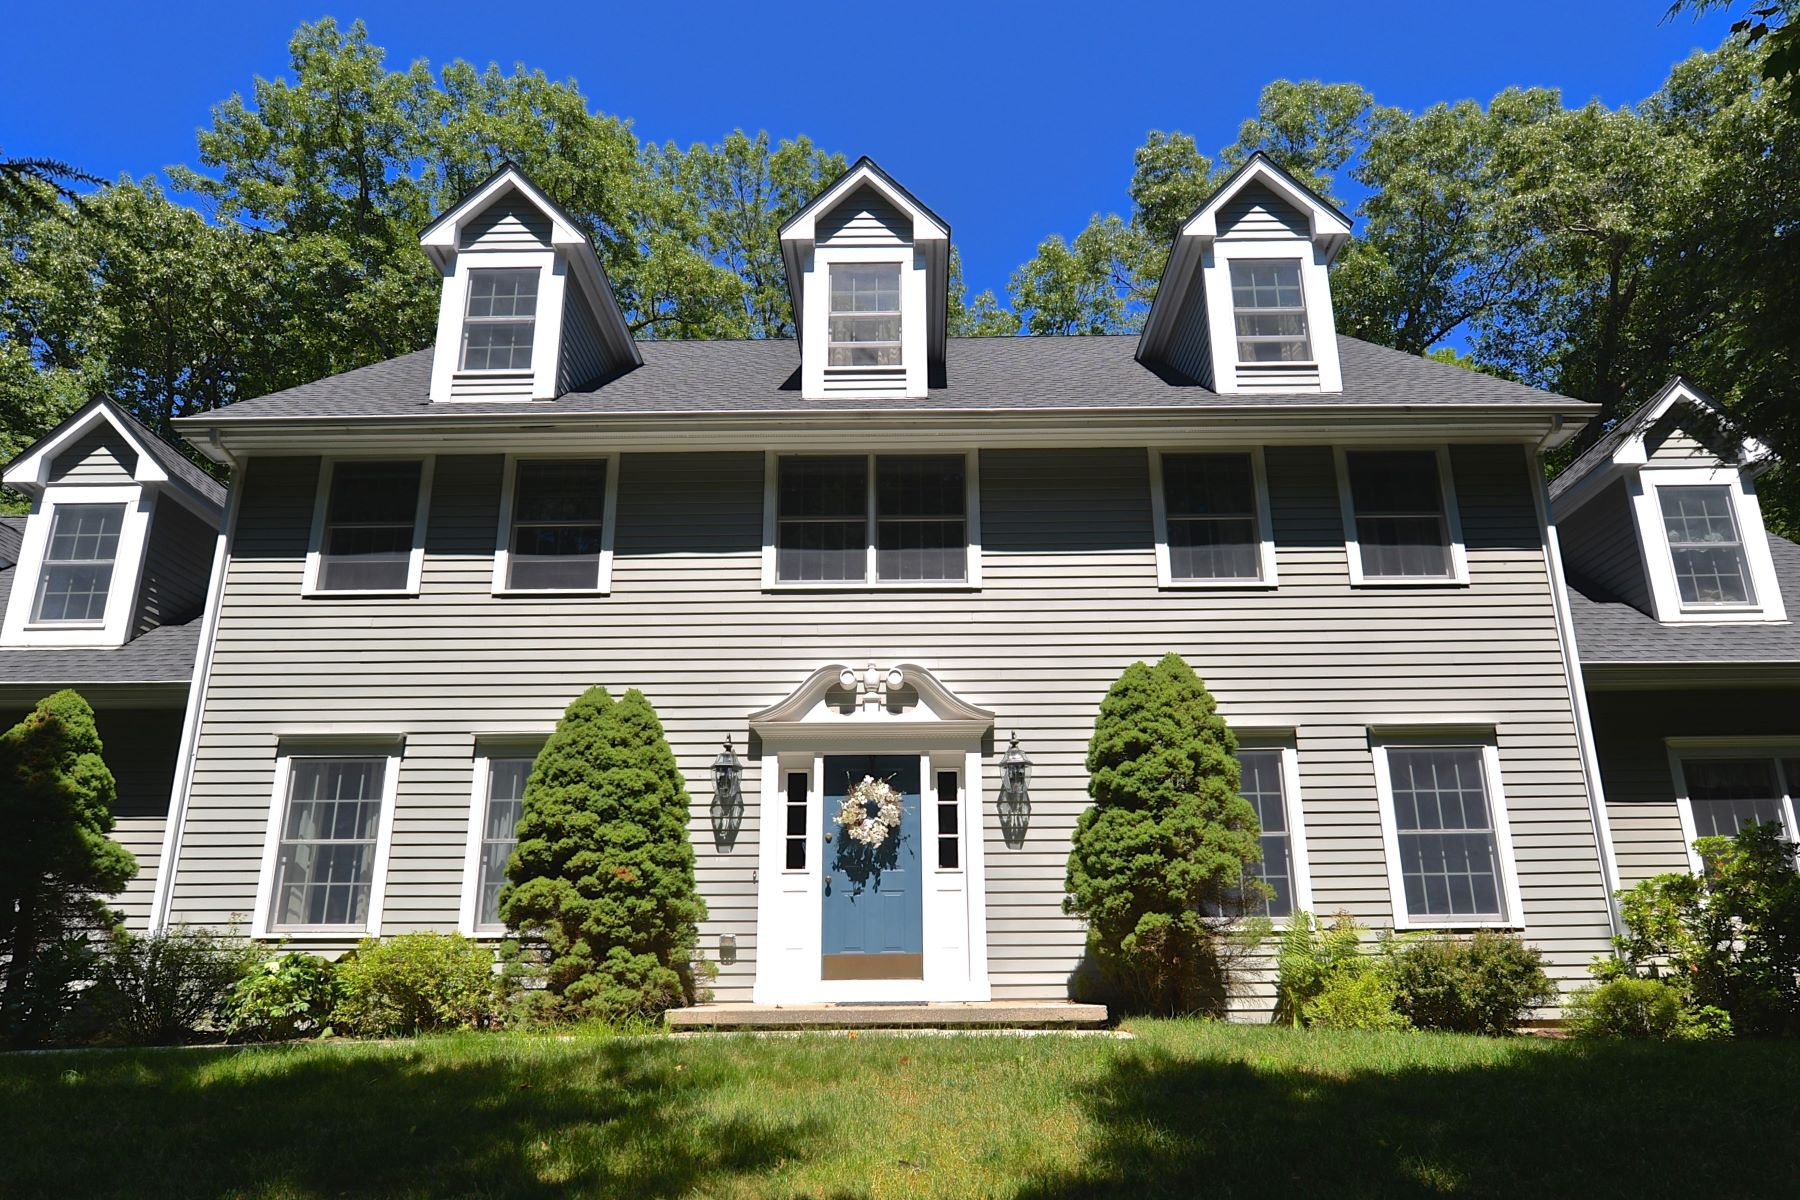 Single Family Homes for Sale at Sought After Barkwood Falls 23 Deerfield Road Brookfield, Connecticut 06804 United States